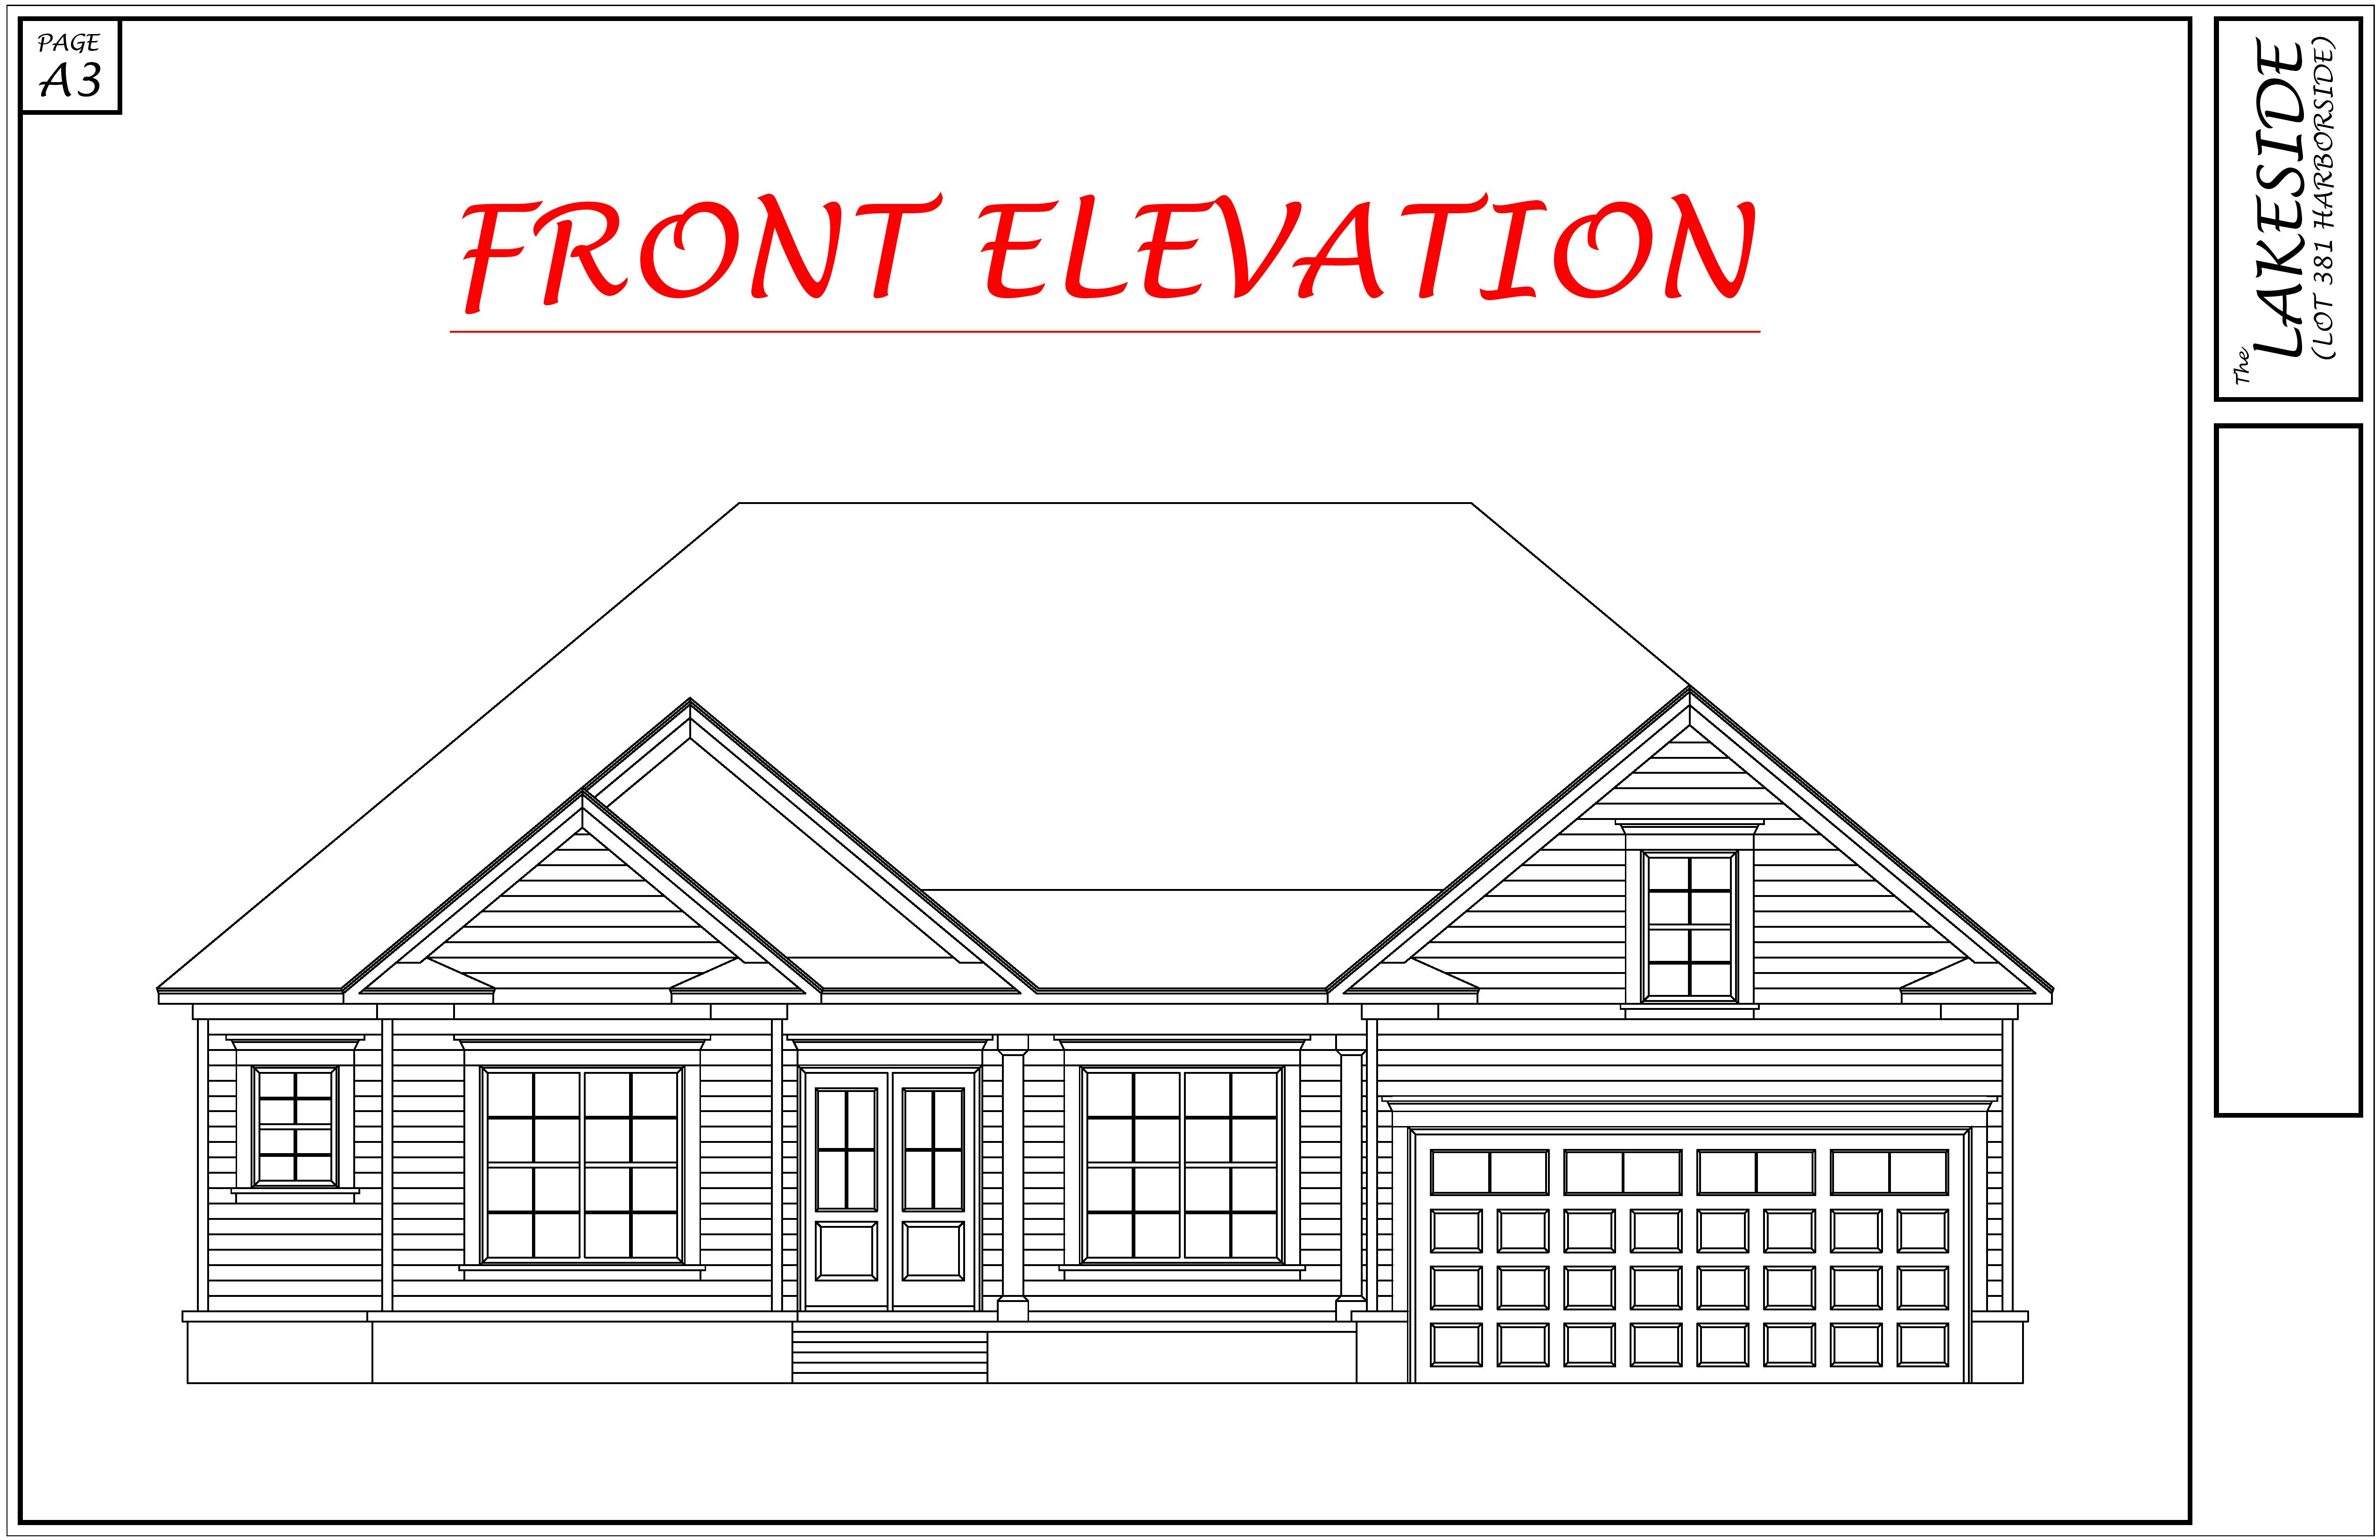 New Construction 717 Long Pointe Lane Front Elevation